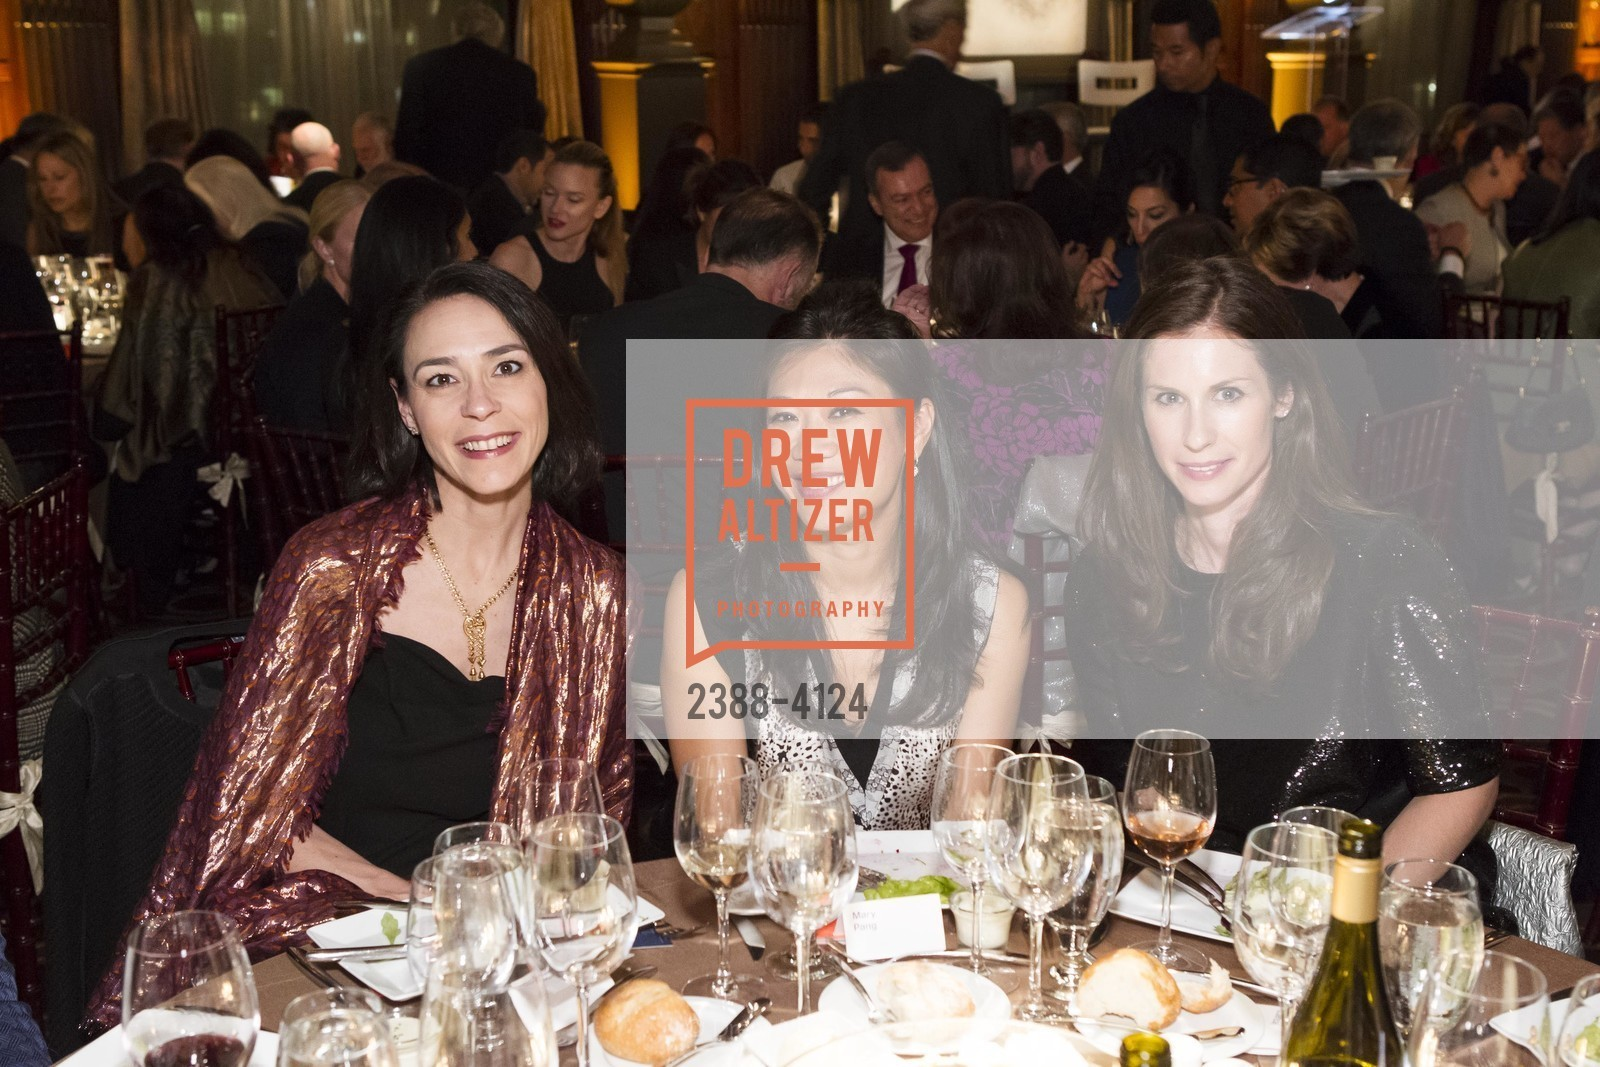 Jennifer Lacata, Mary Pang, Yasmine Zdencaj, Photo #2388-4124